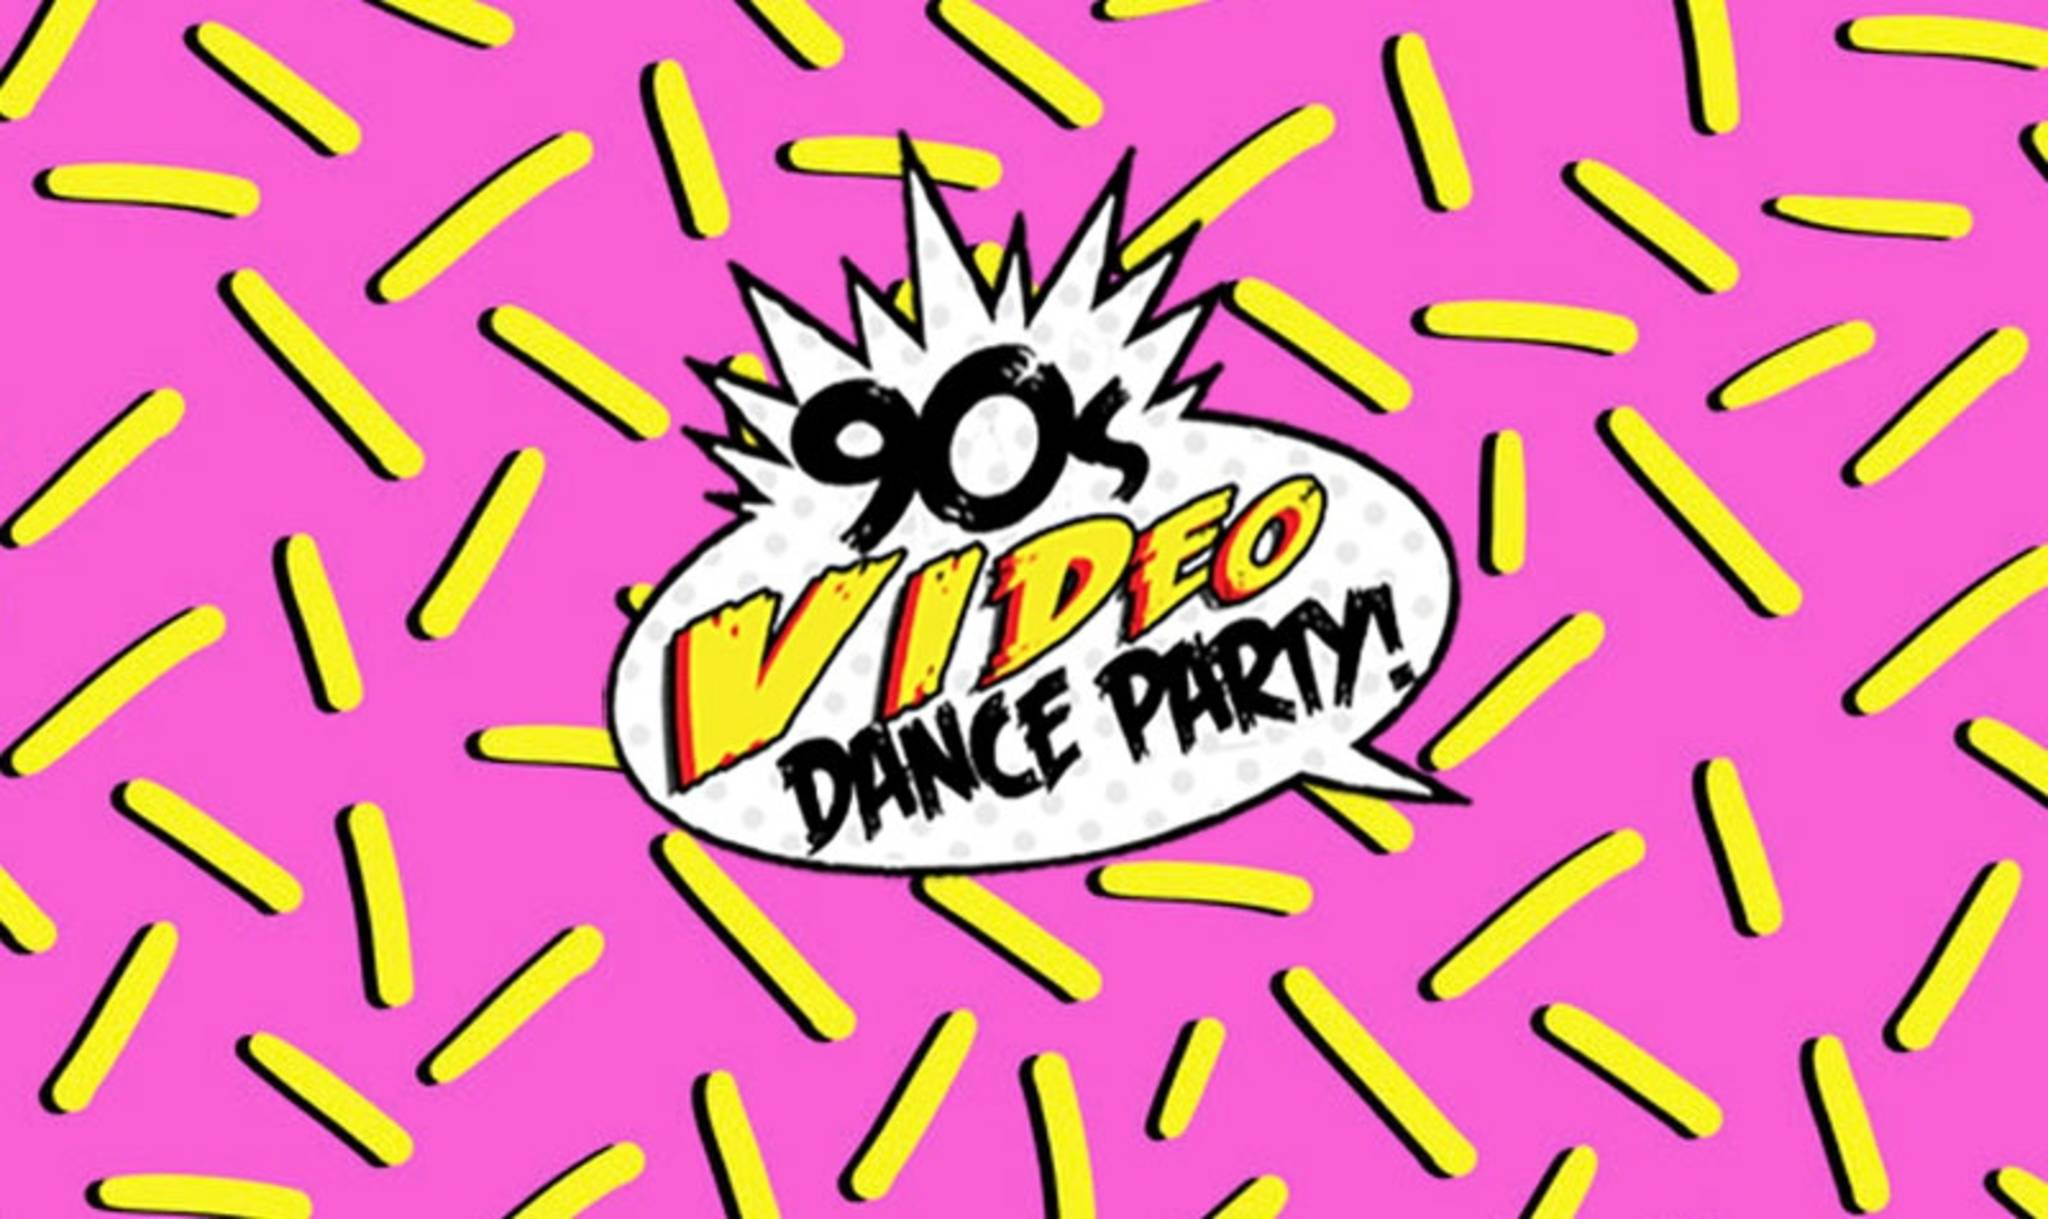 ENDLESS SUMMER: 90s Video Dance Party.